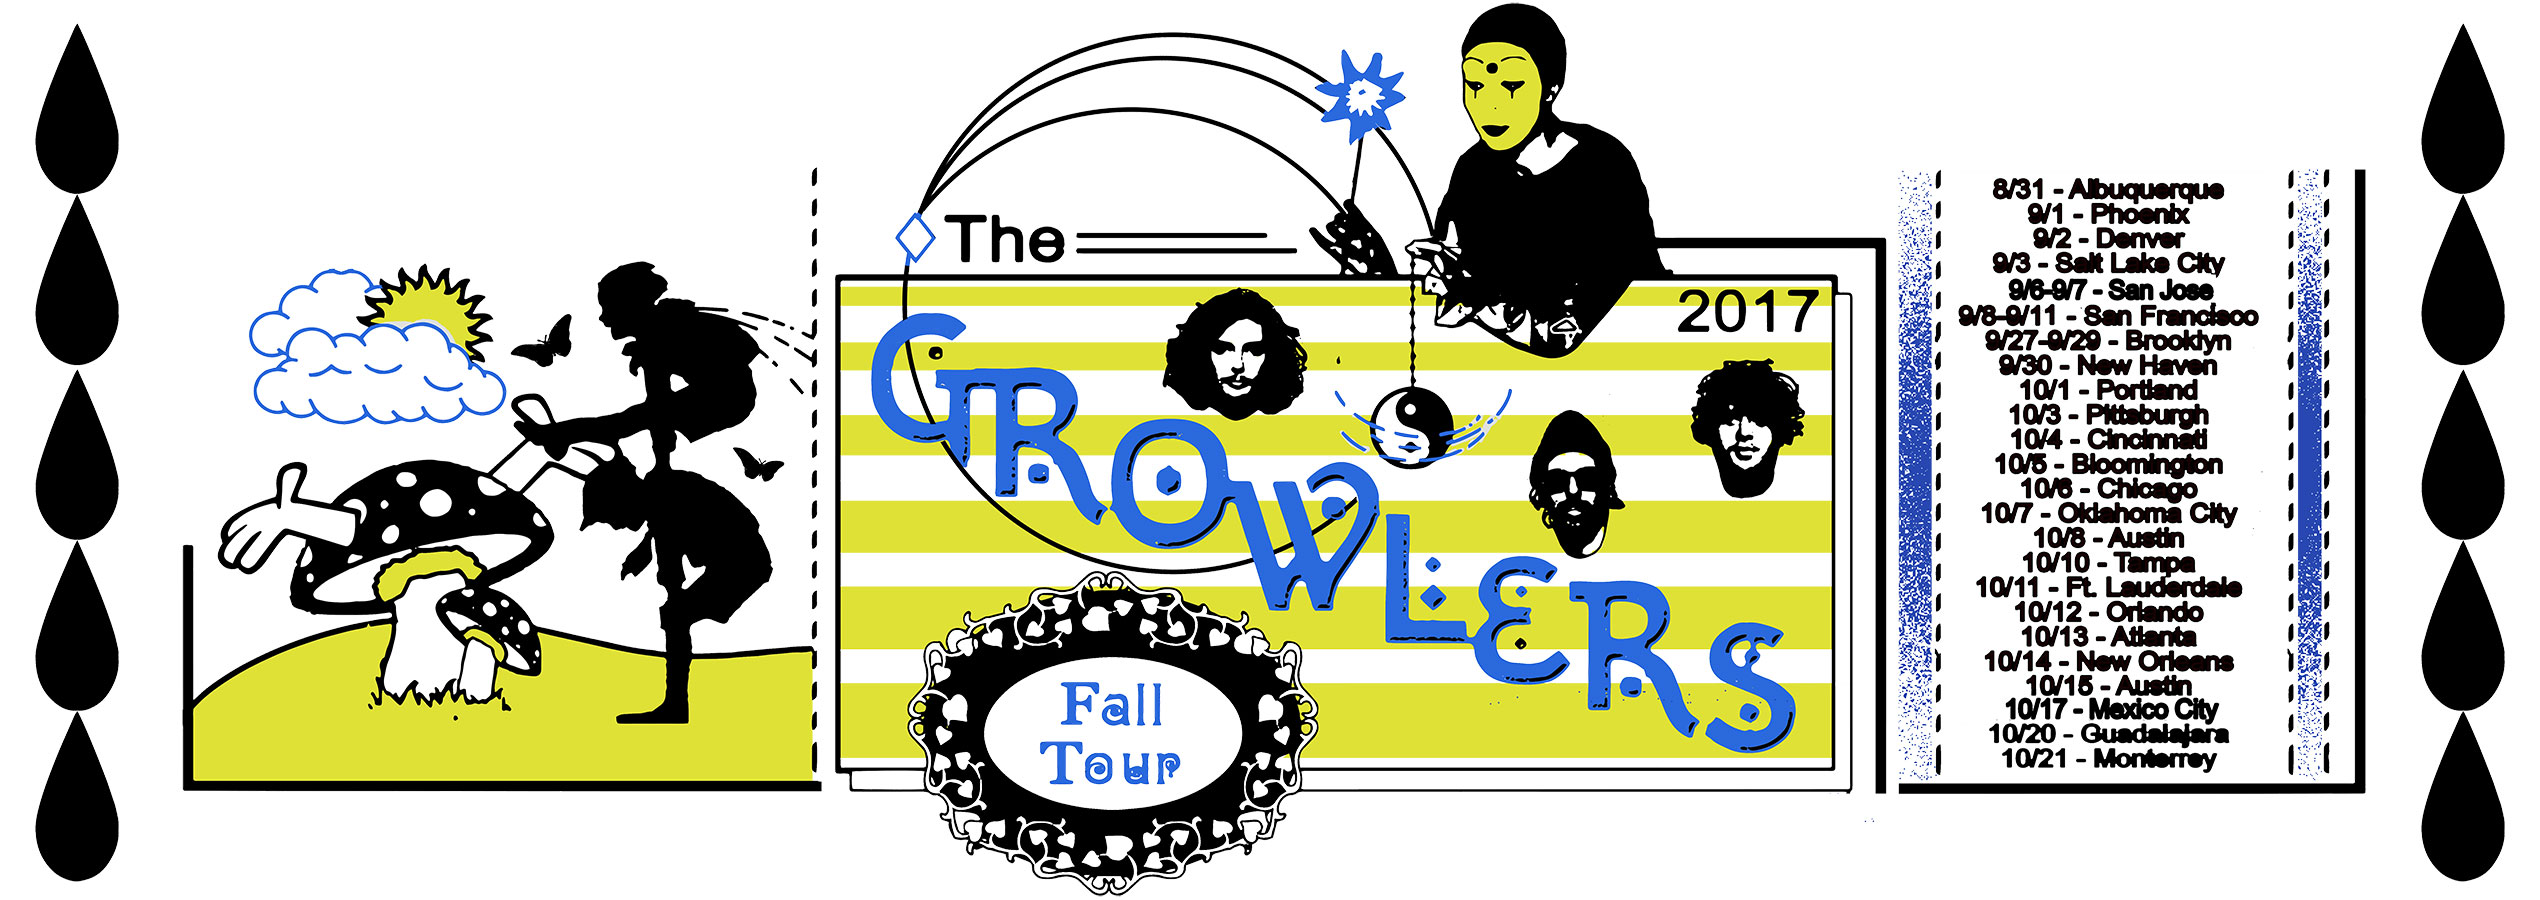 The Growlers Fall Tour 2017